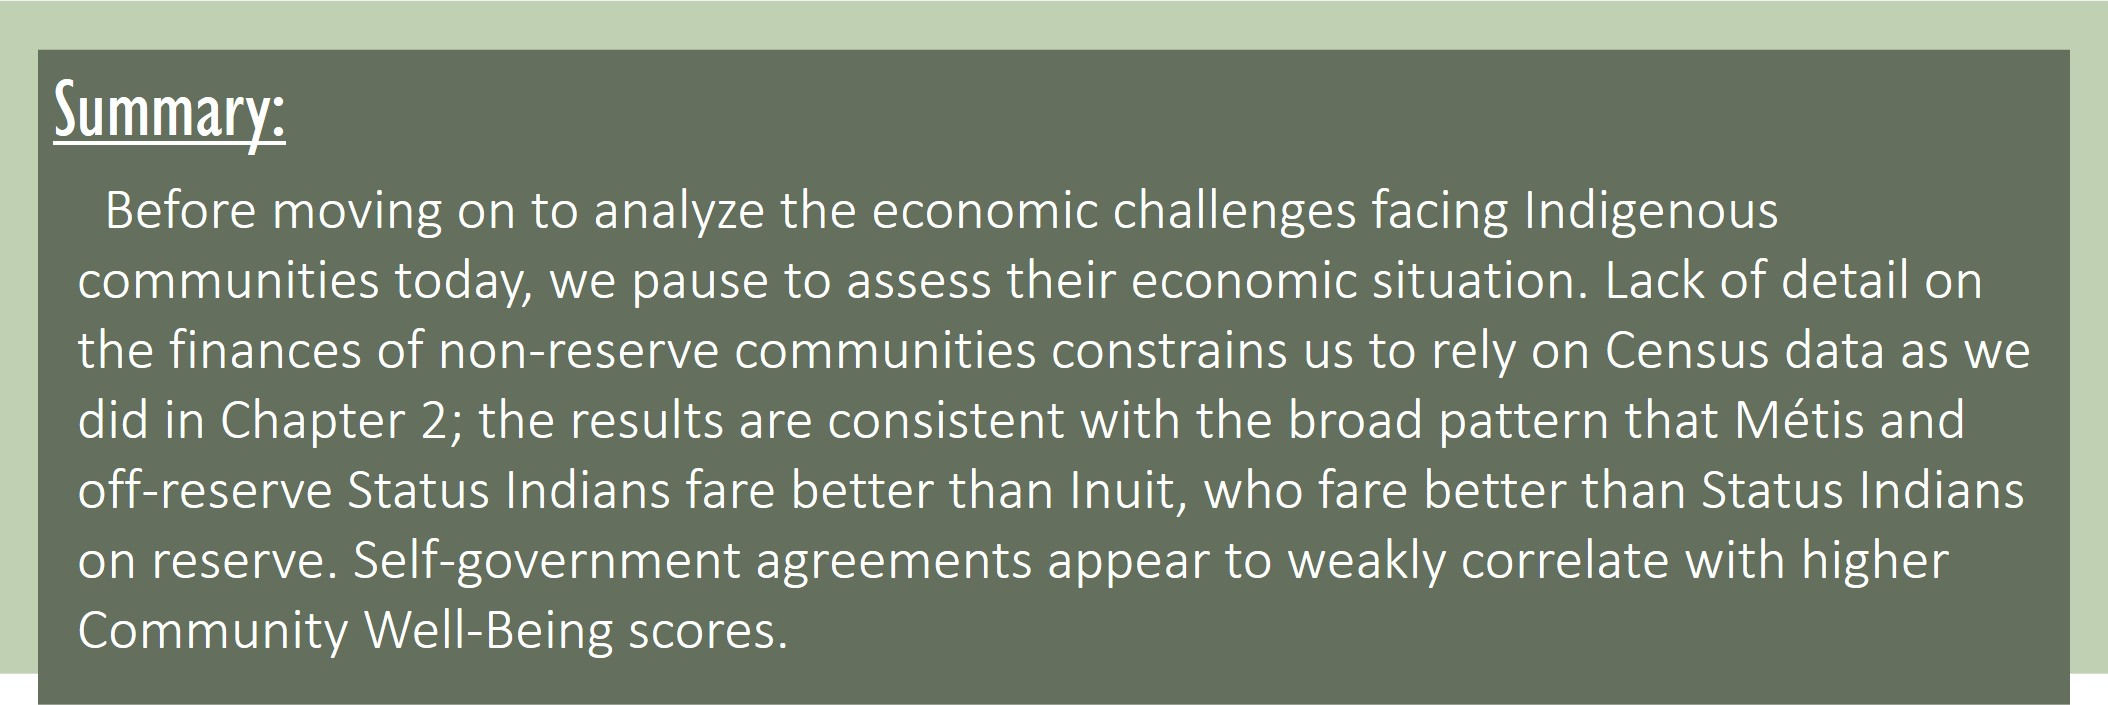 Summary: Before moving on to analyze the economic challenges facing Indigenous communities today, we pause to assess their economic situation. Lack of detail on the finances of non-reserve communities constrains us to rely on Census data as we did in Chapter 2; the results are consistent with the broad pattern that Métis and off-reserve Status Indians fare better than Inuit, who fare better than Status Indians on reserve. Self-government agreements appear to weakly correlate with higher Community Well-Being scores.